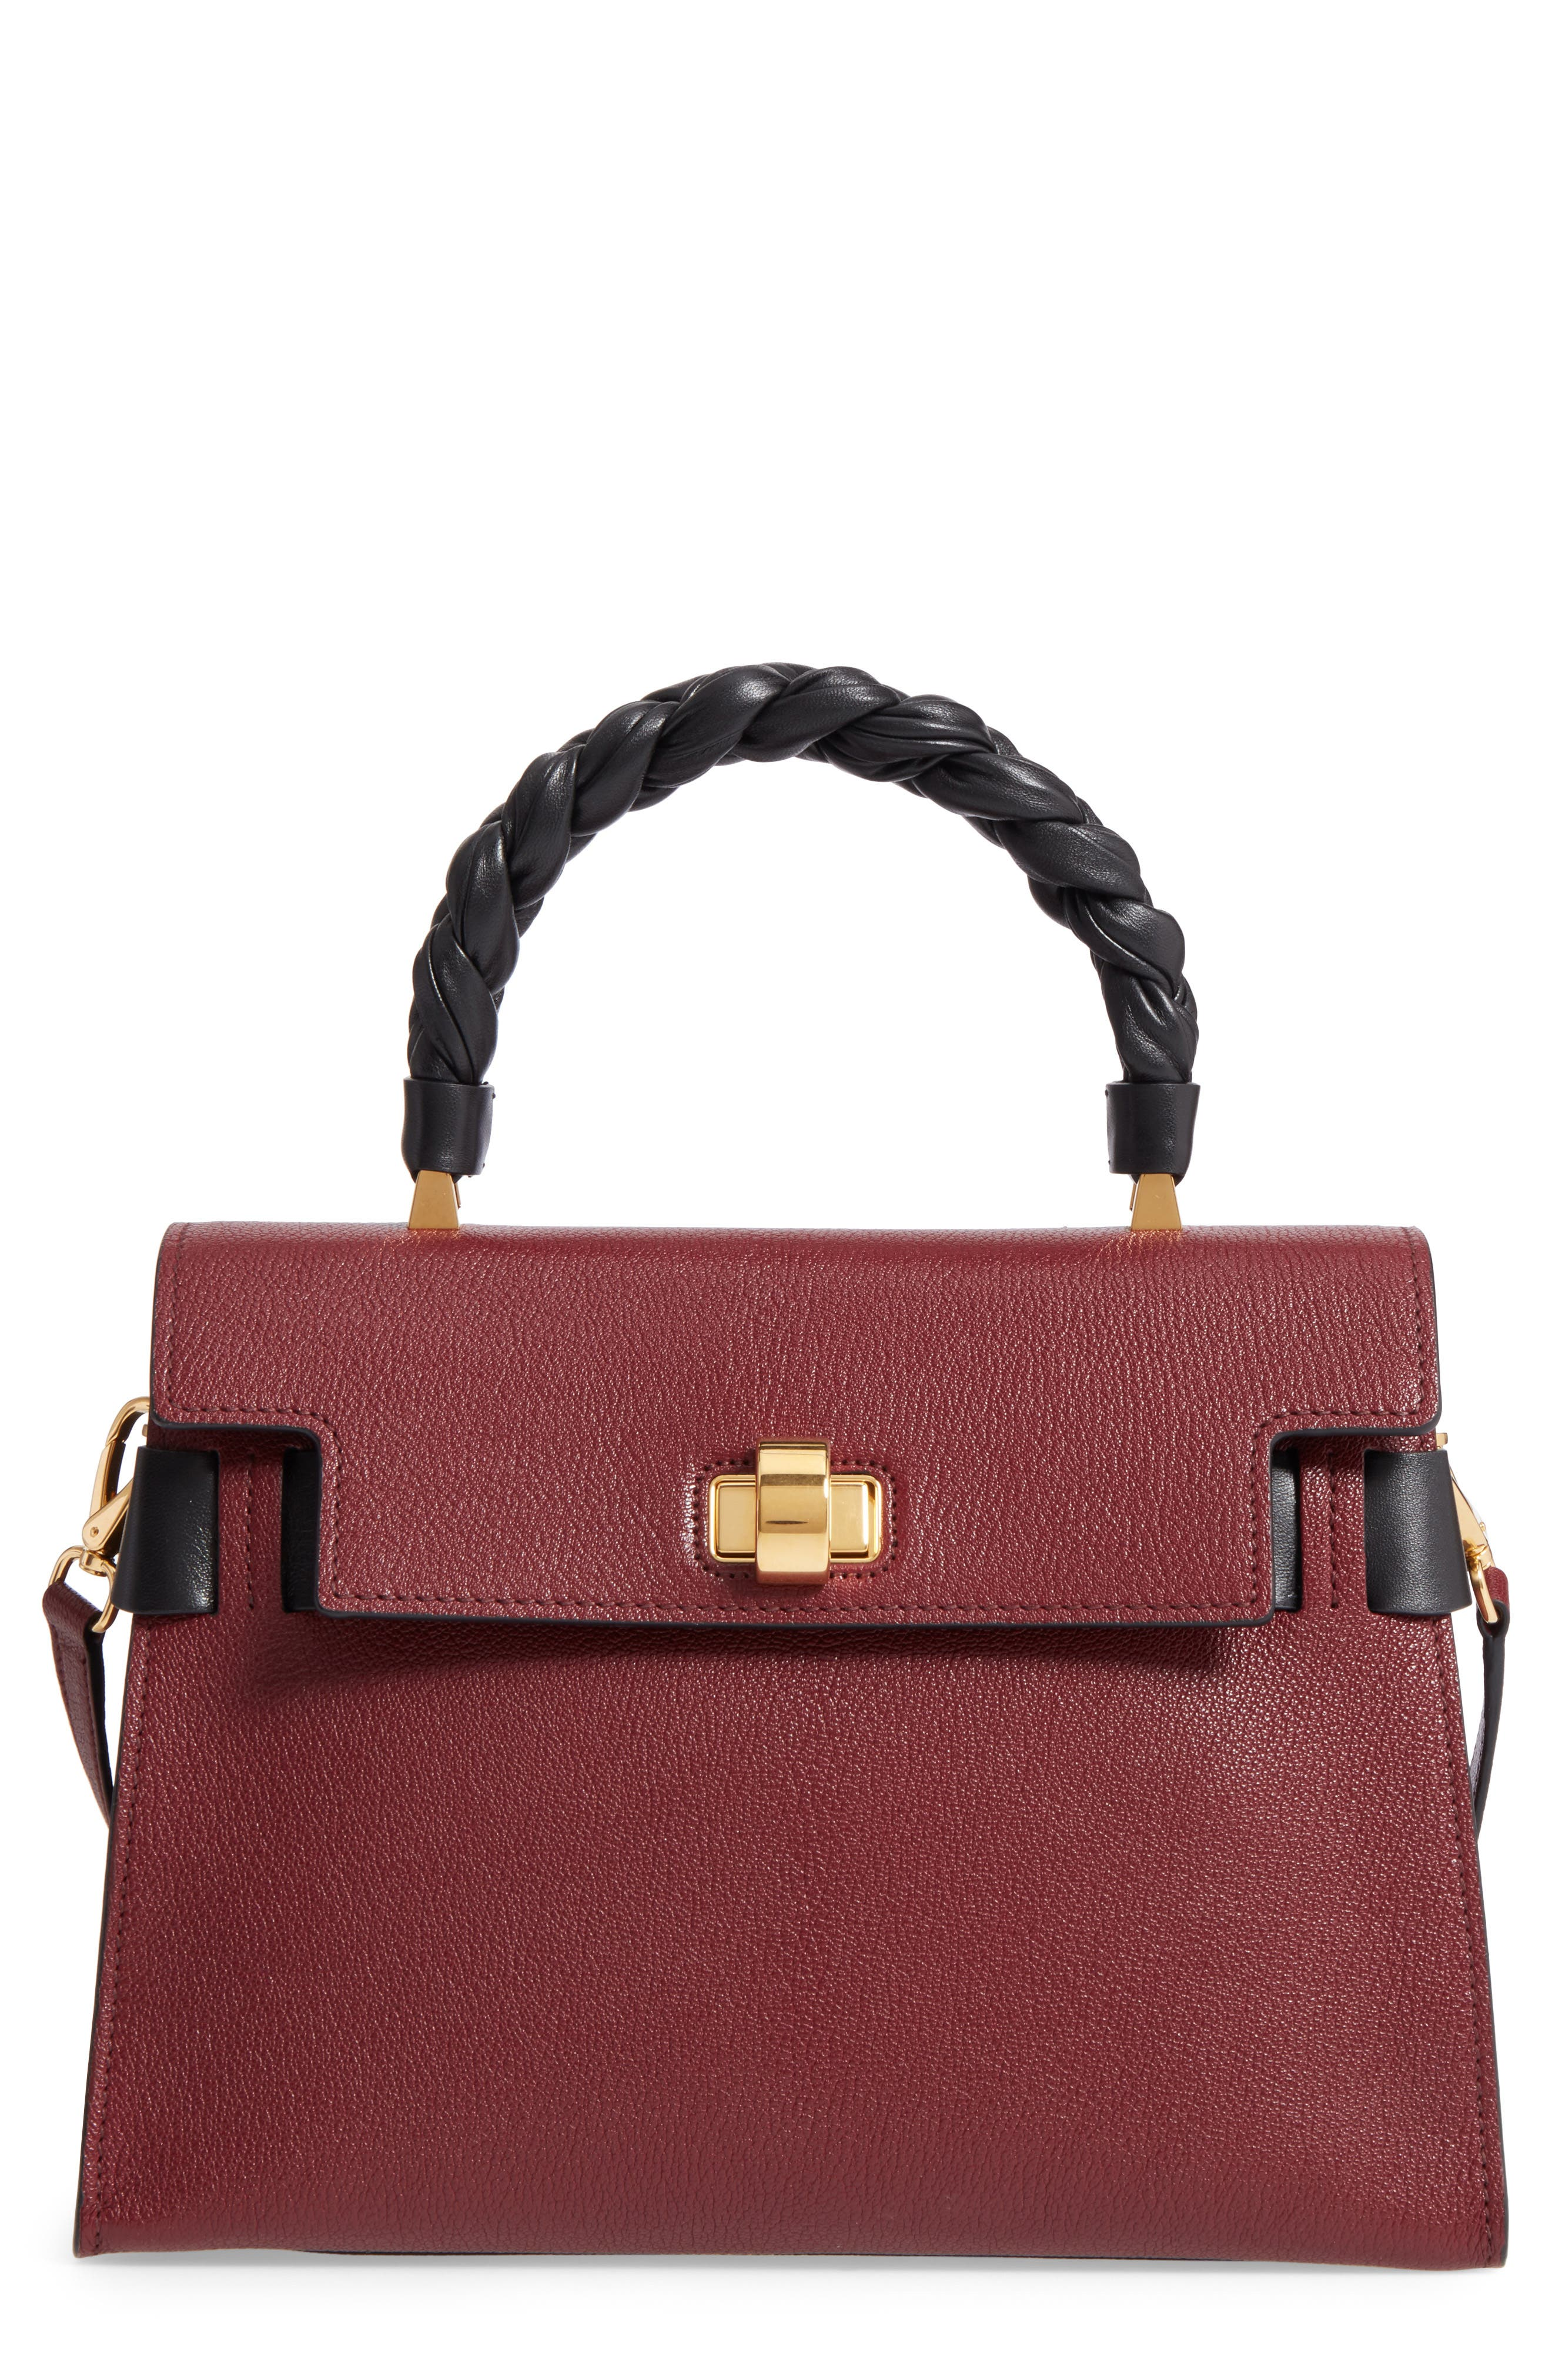 Madras Click Goatskin Leather Satchel,                         Main,                         color, 930